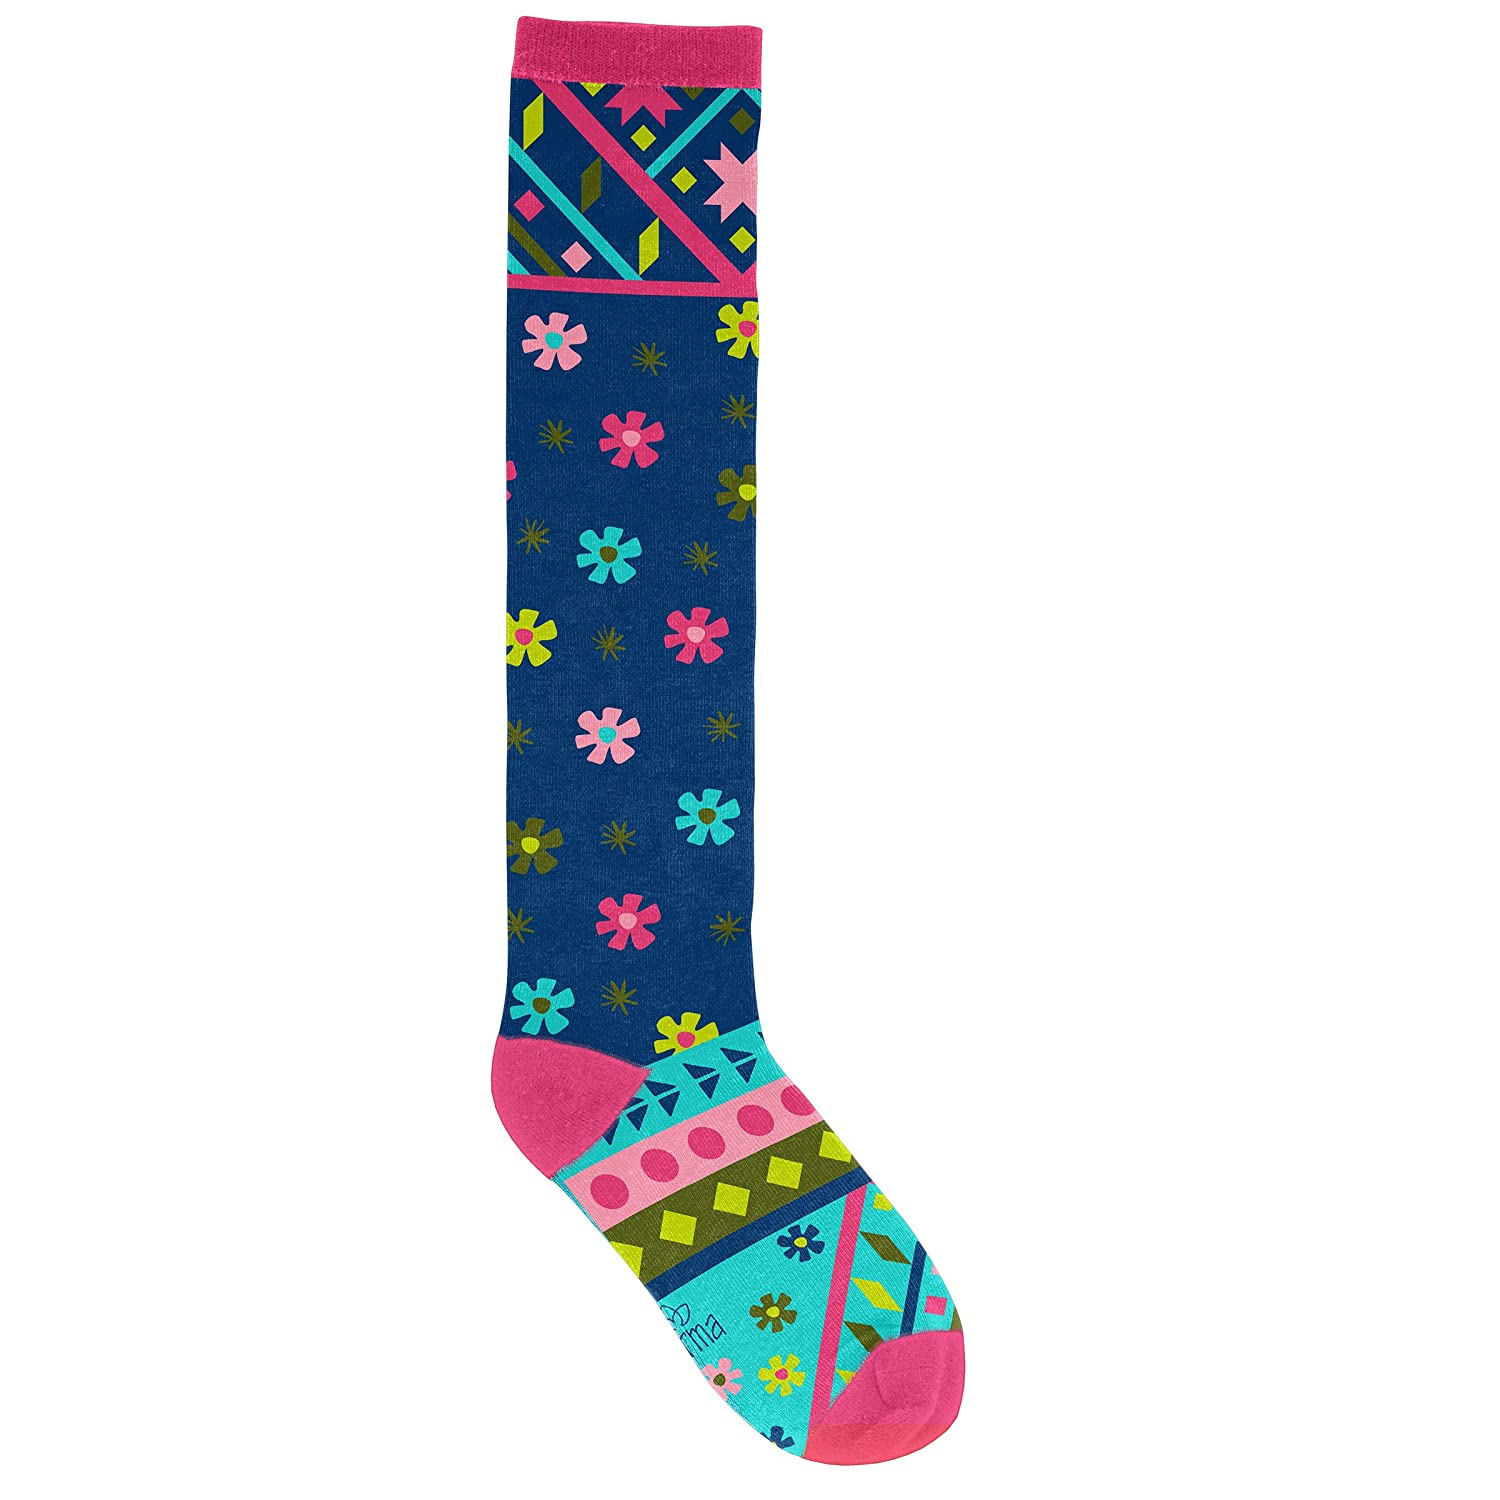 ace74f015 Amazon.com  Karma Gifts Knee High Socks Llama  Home   Kitchen